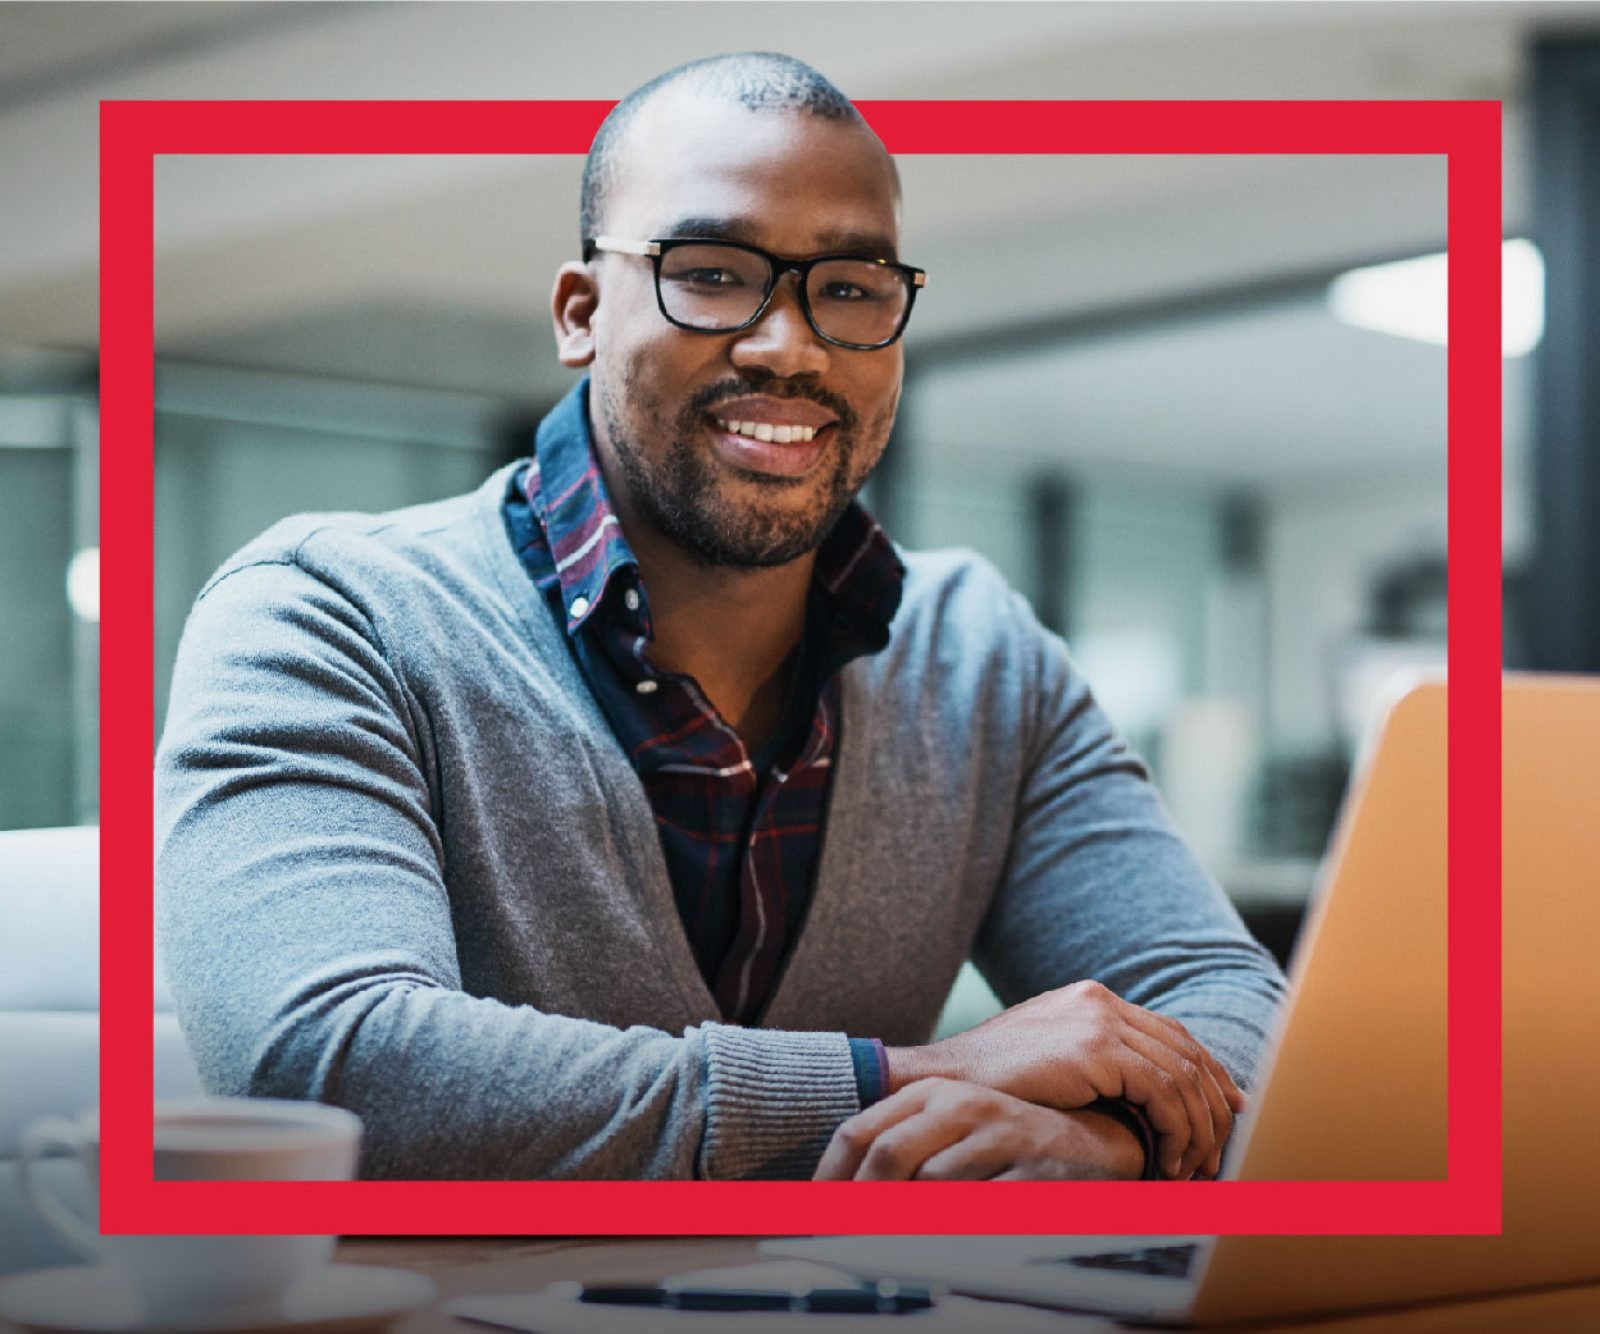 A Black developer wearing glasses smiles and sits in front of a laptop